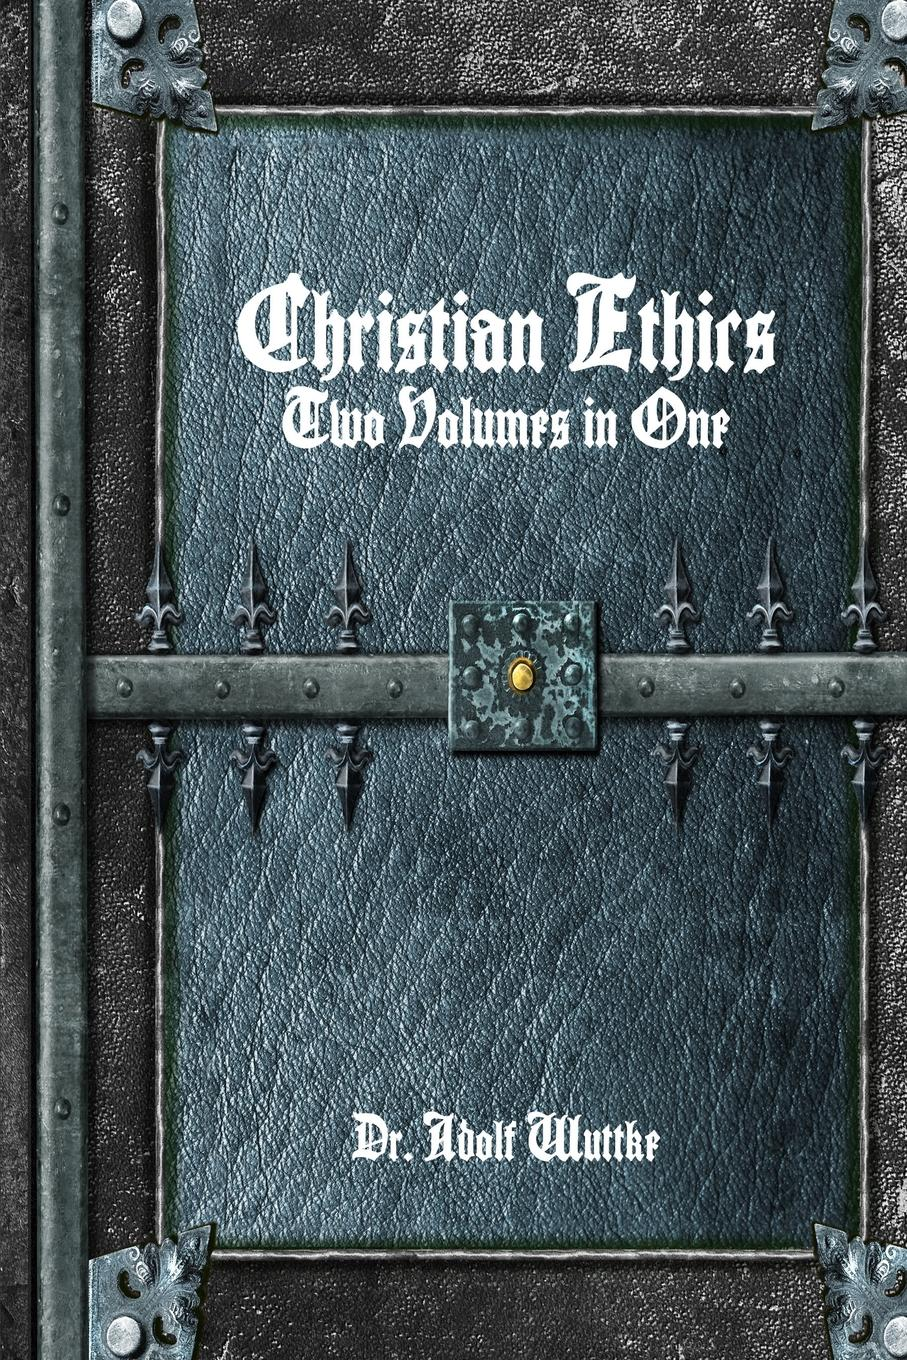 Adolf Wuttke Christian Ethics. Two Volumes in One the eye of the world the wheel of time book 2 chinese edition 400 page